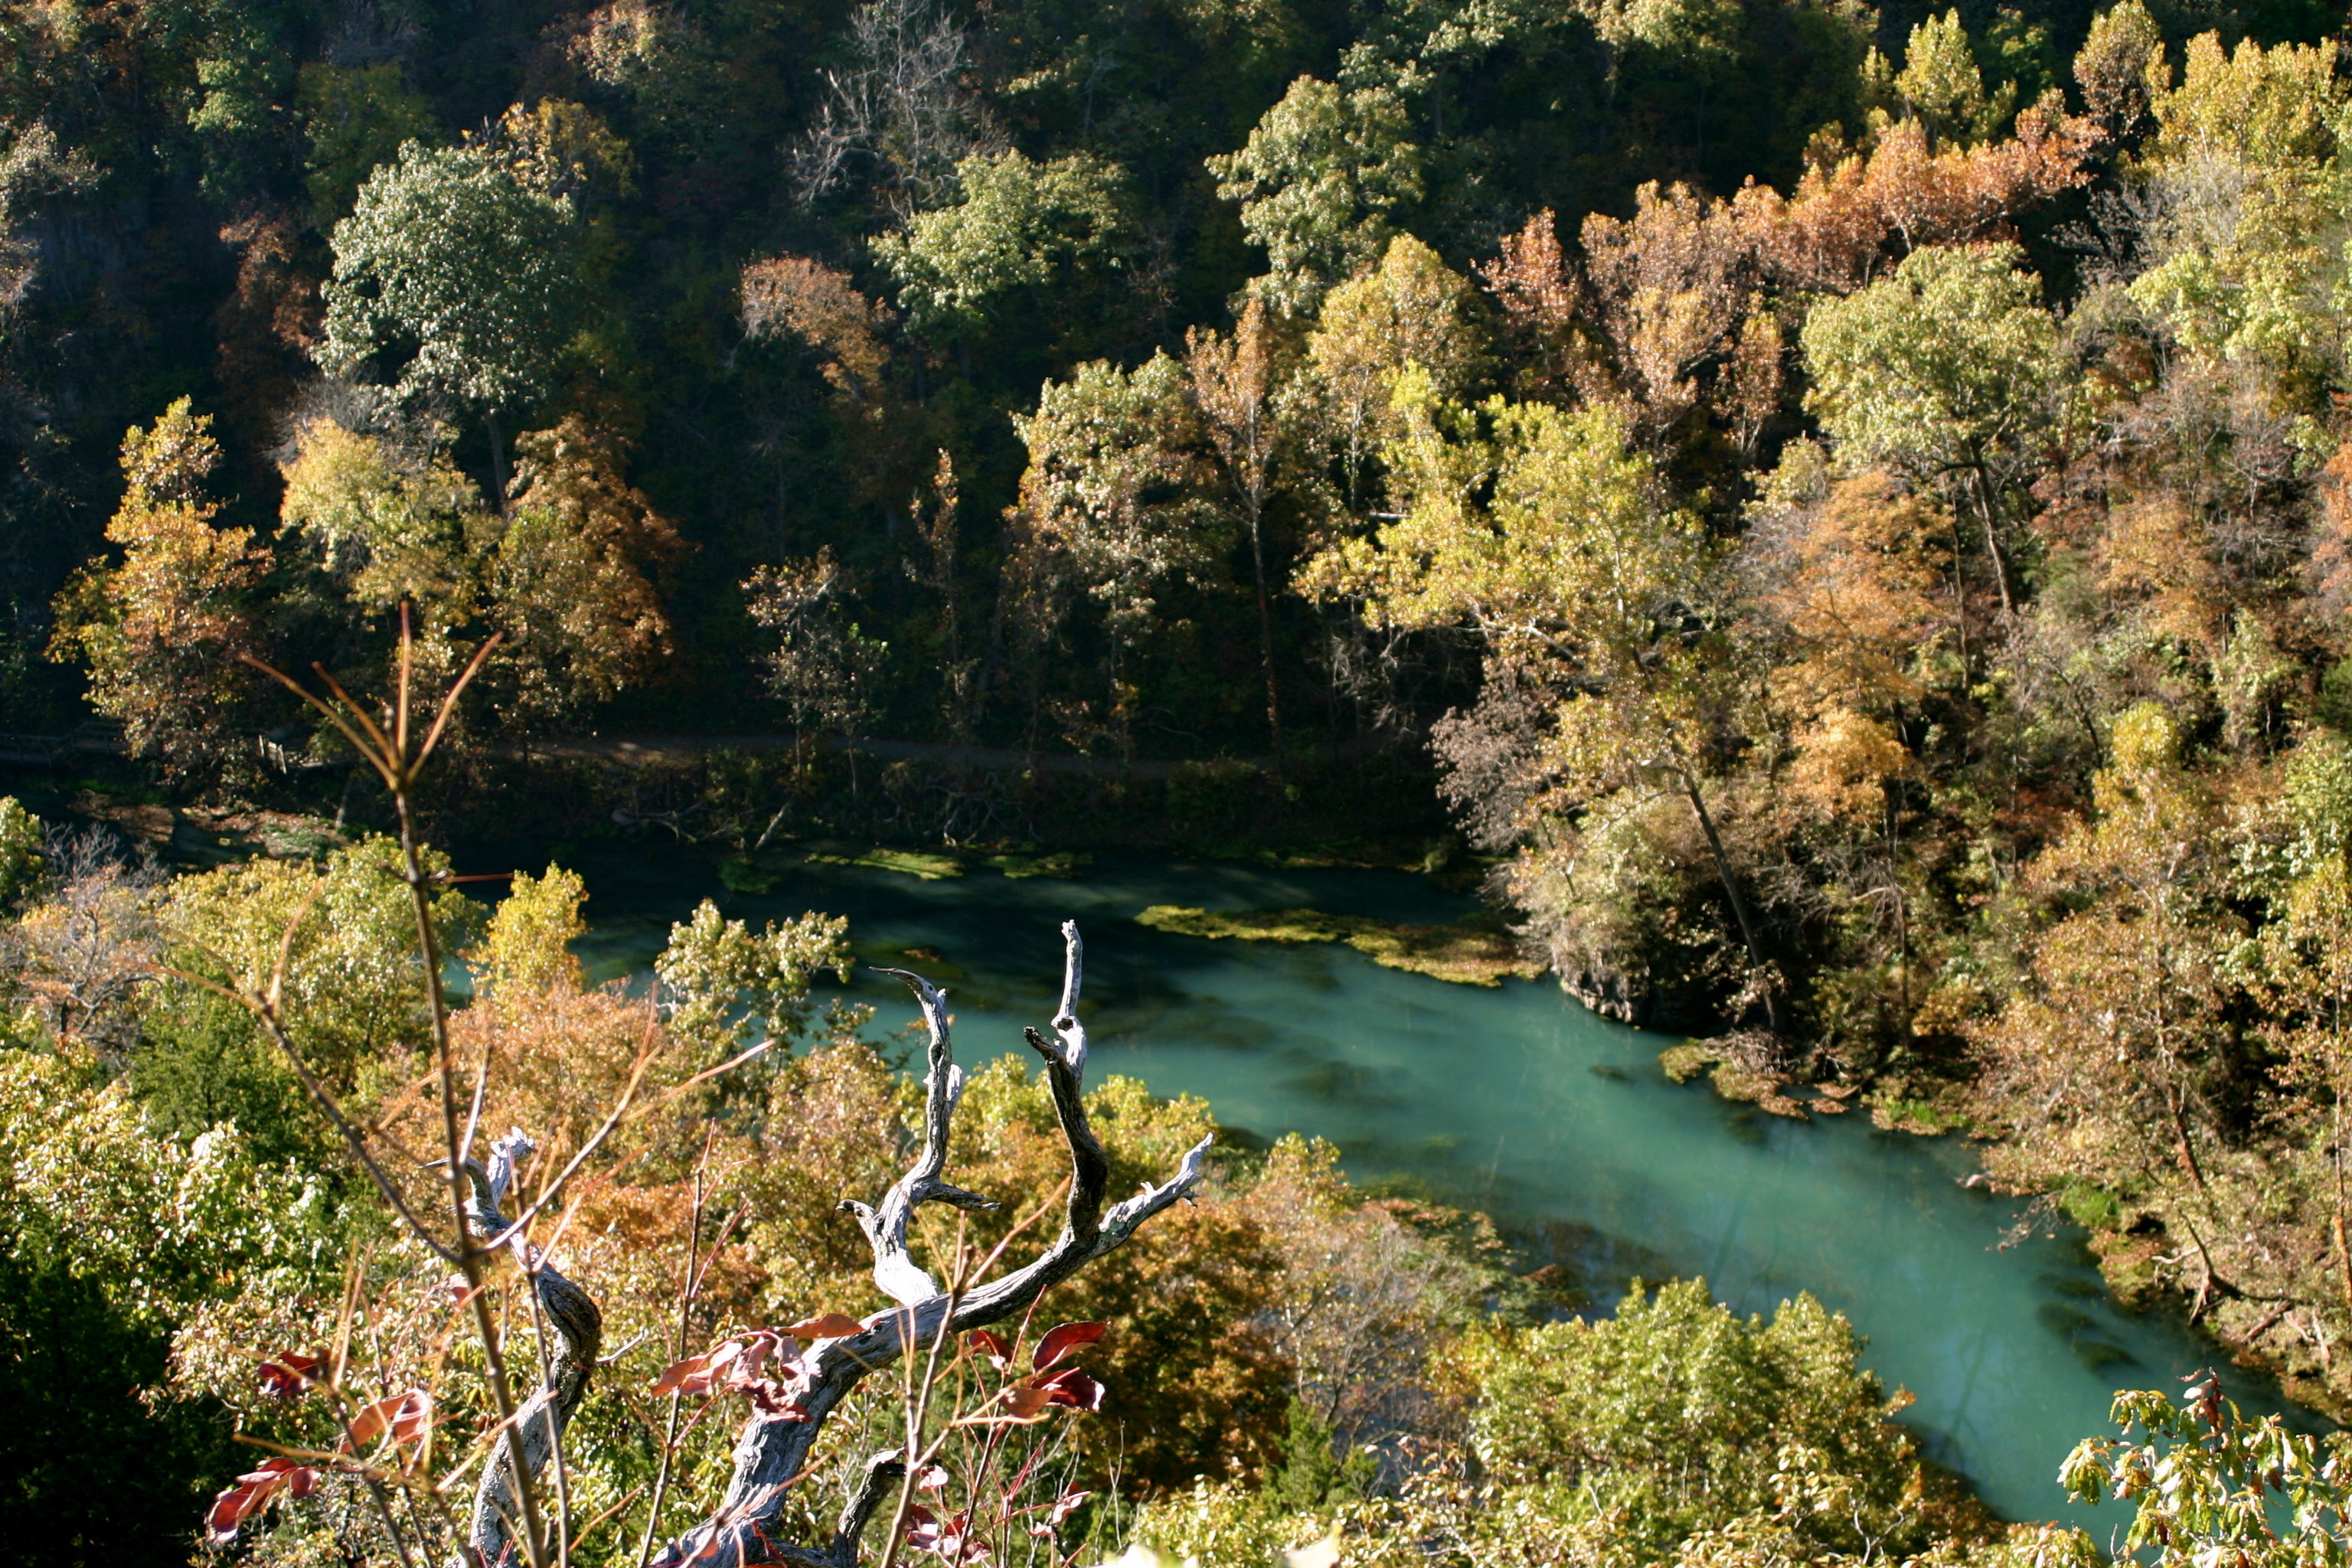 A View of Ha Ha Tonka Spring from the Castle Lookout